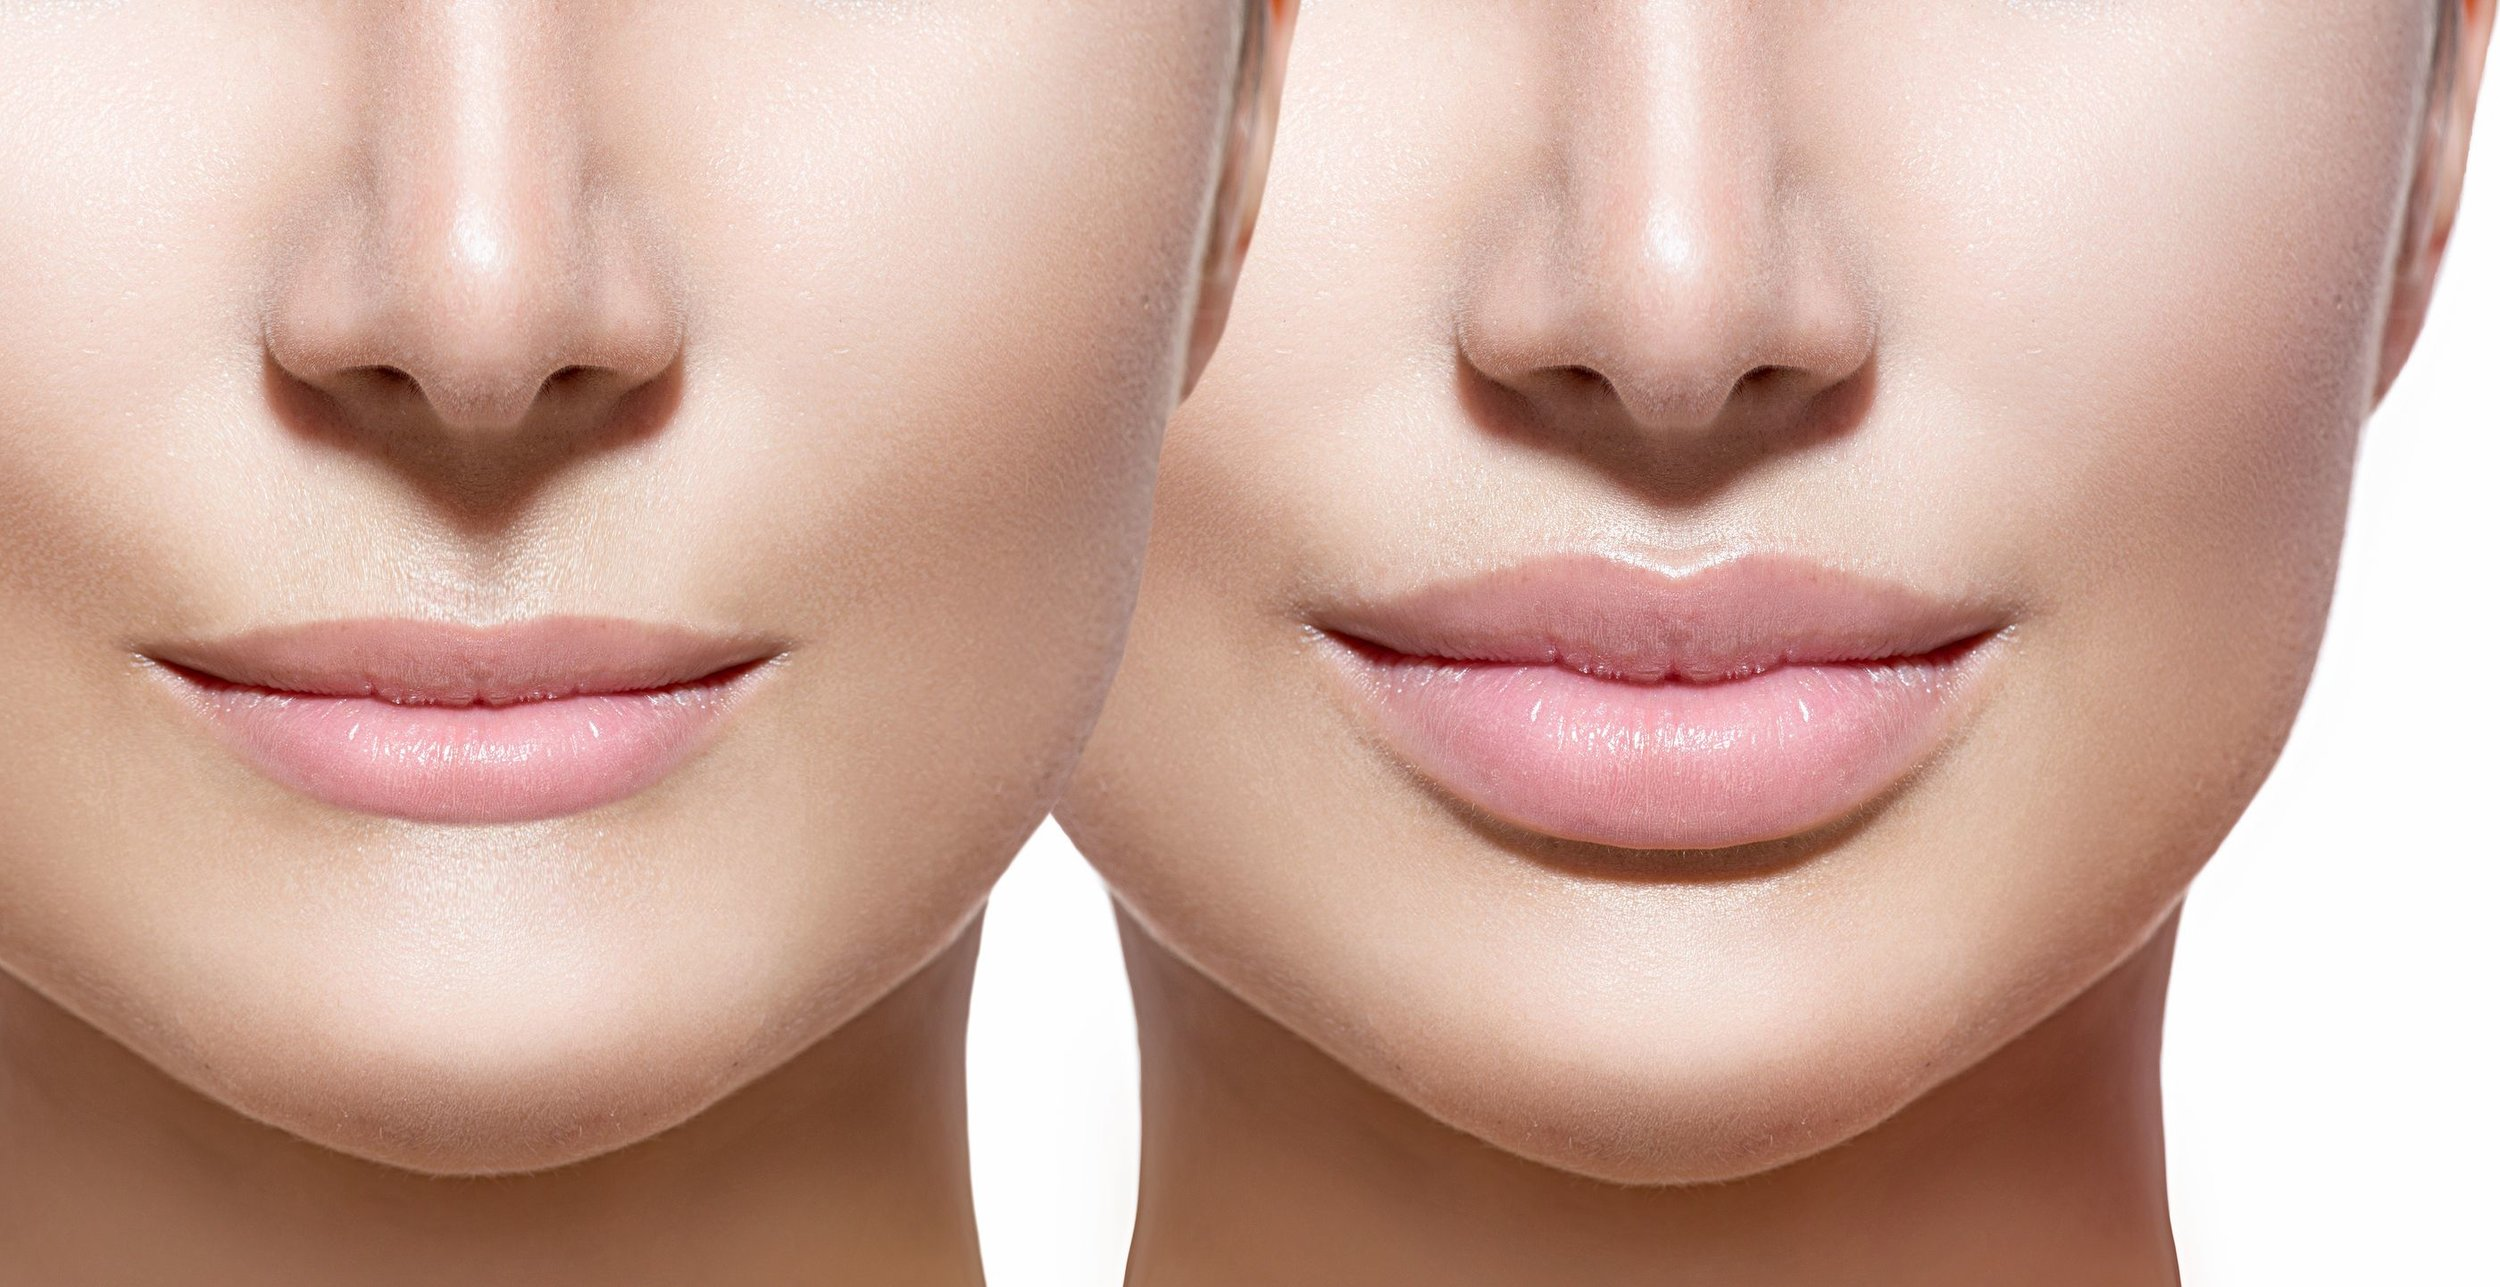 how-to-get-fuller-lips-options-1.jpg